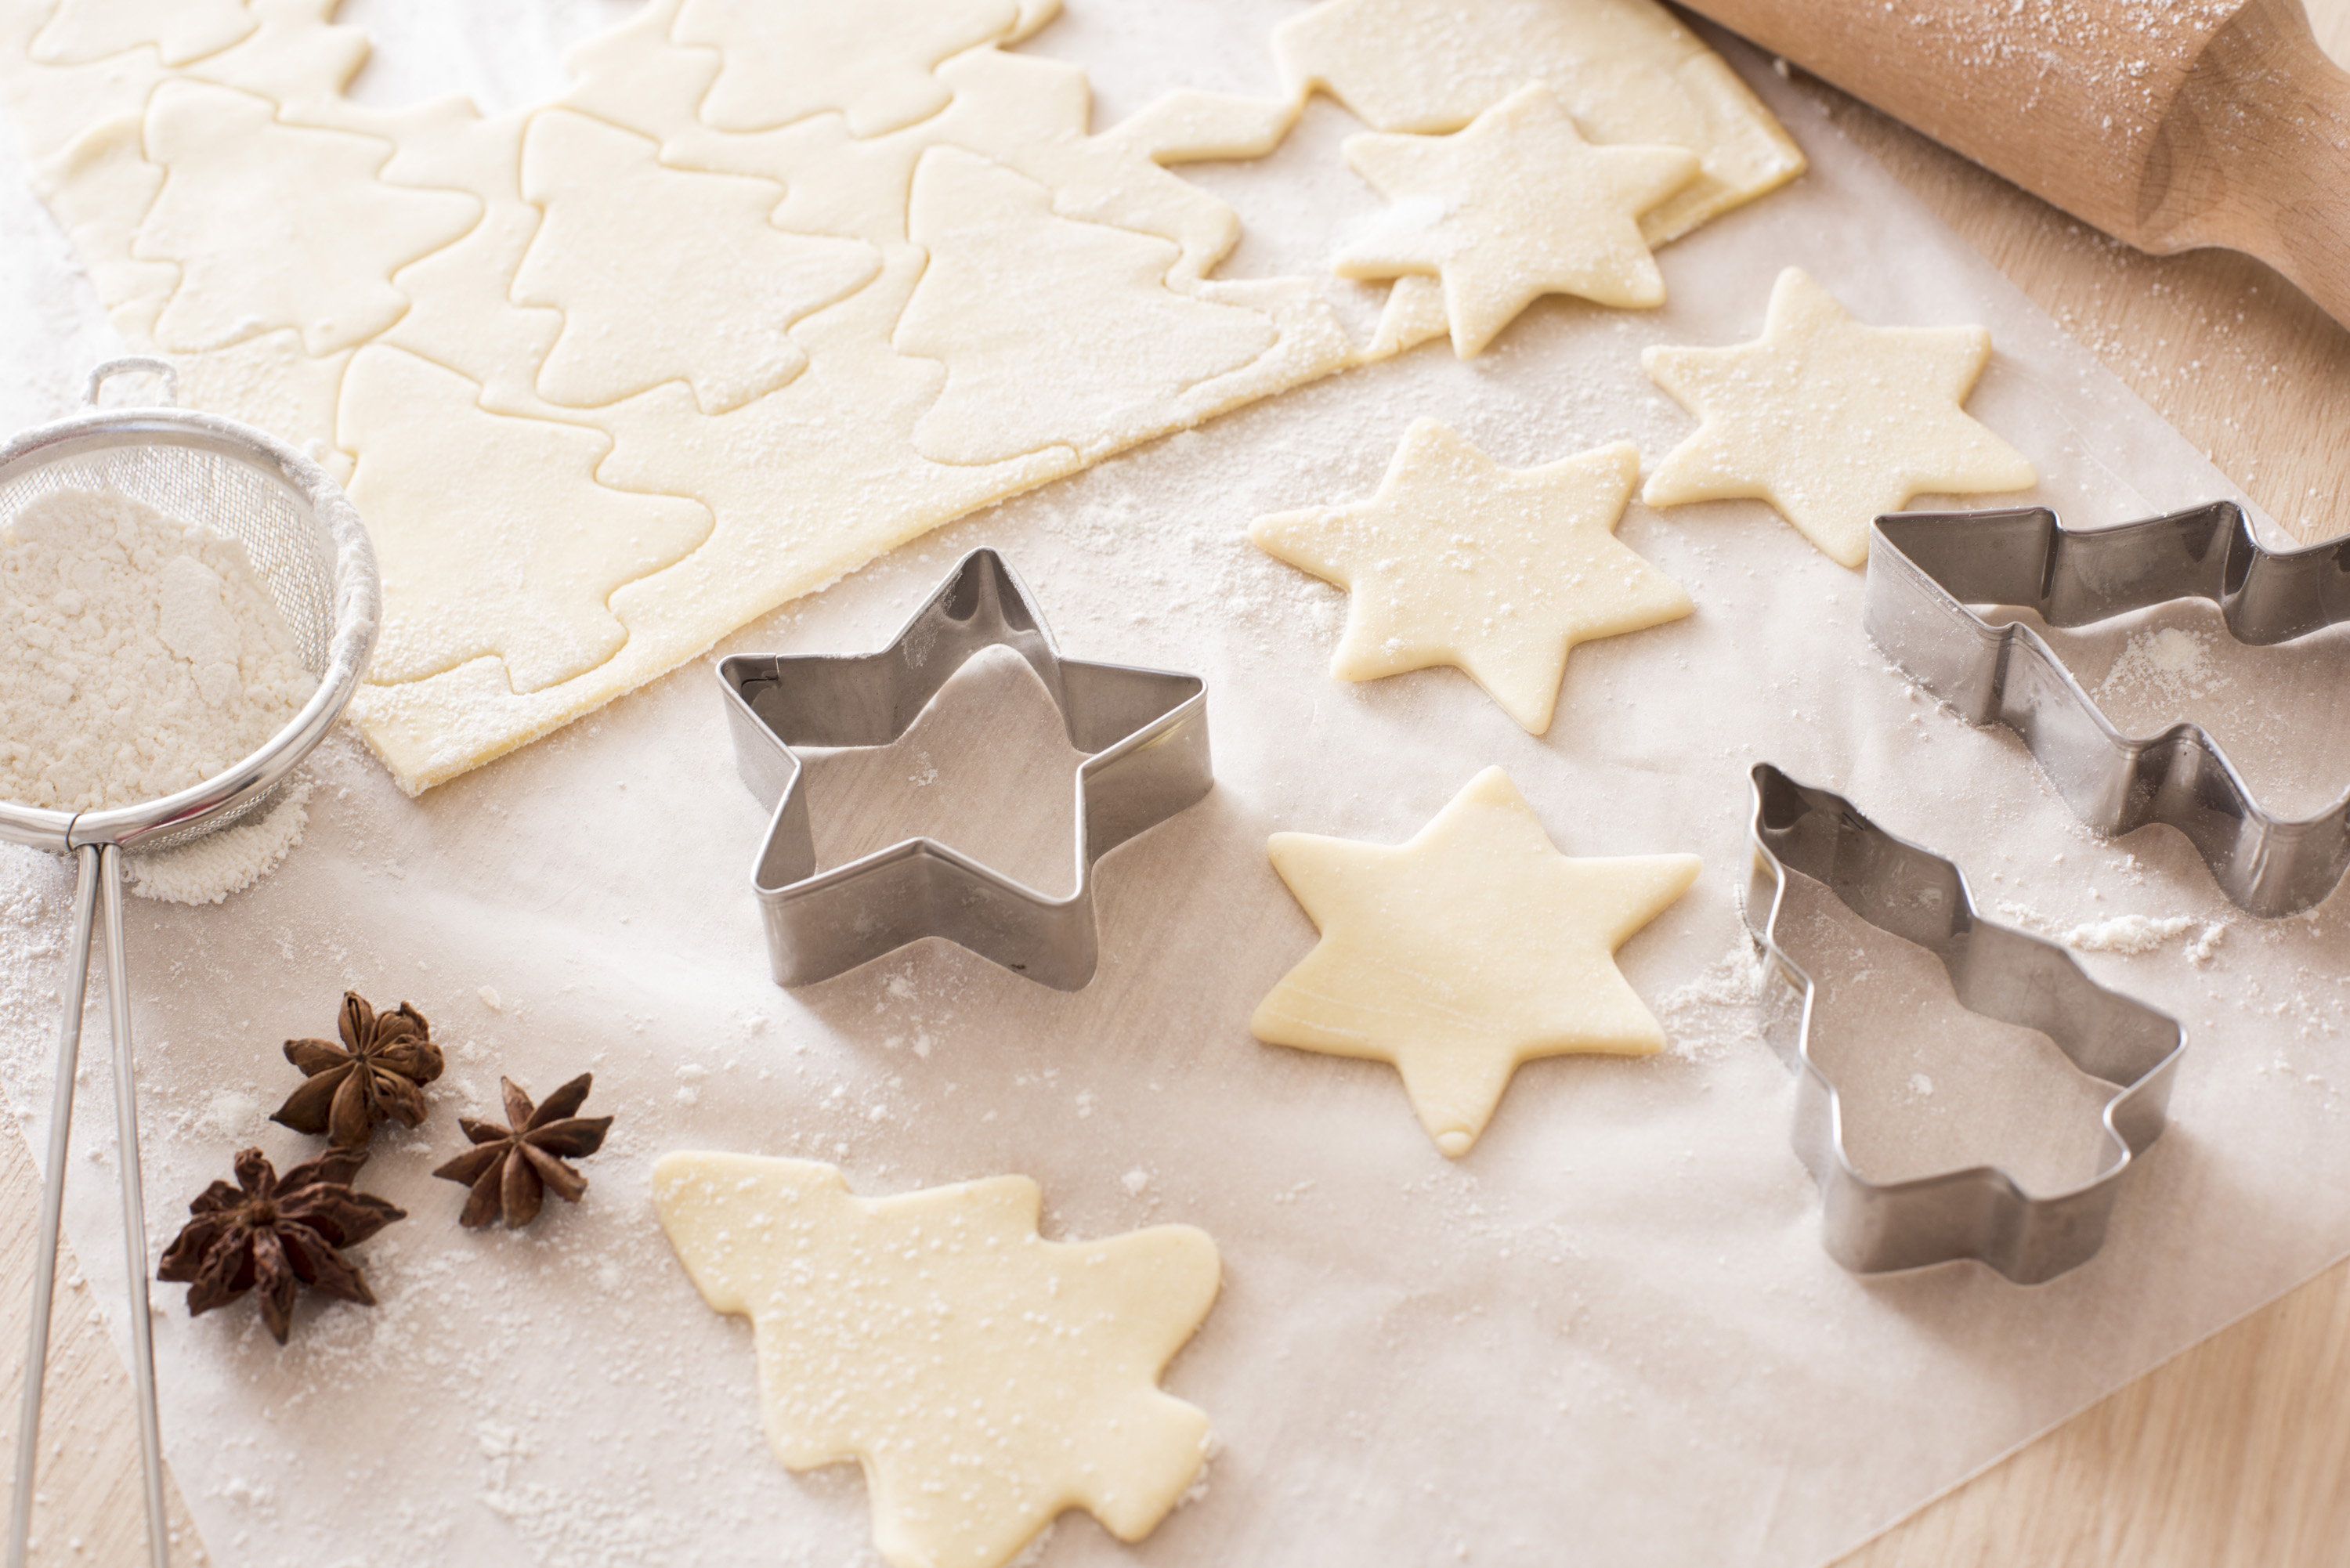 Baking traditional spicy Christmas cookies with star anise and cut out uncooked pastry tree and star shapes alongside seasonal metal cutters on oven paper on a wooden kitchen counter